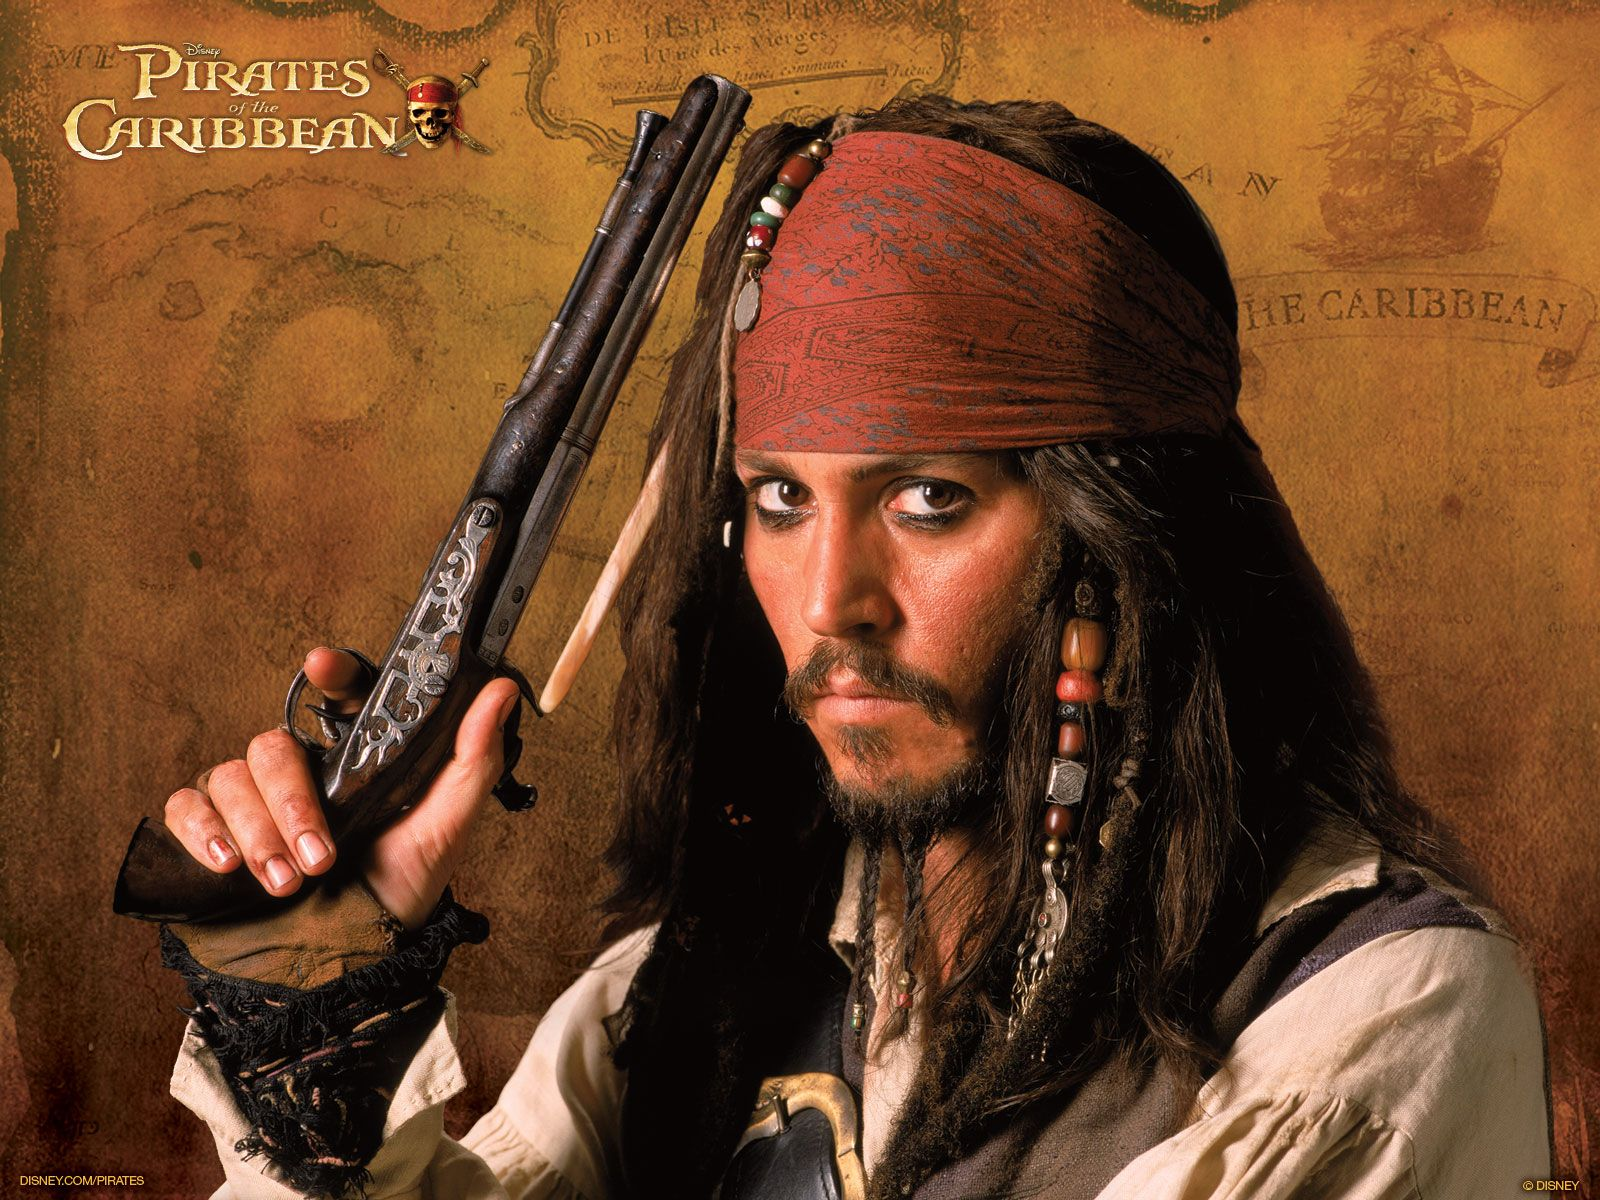 johnny depp as captain jack sparrow computer wallpapers, desktop